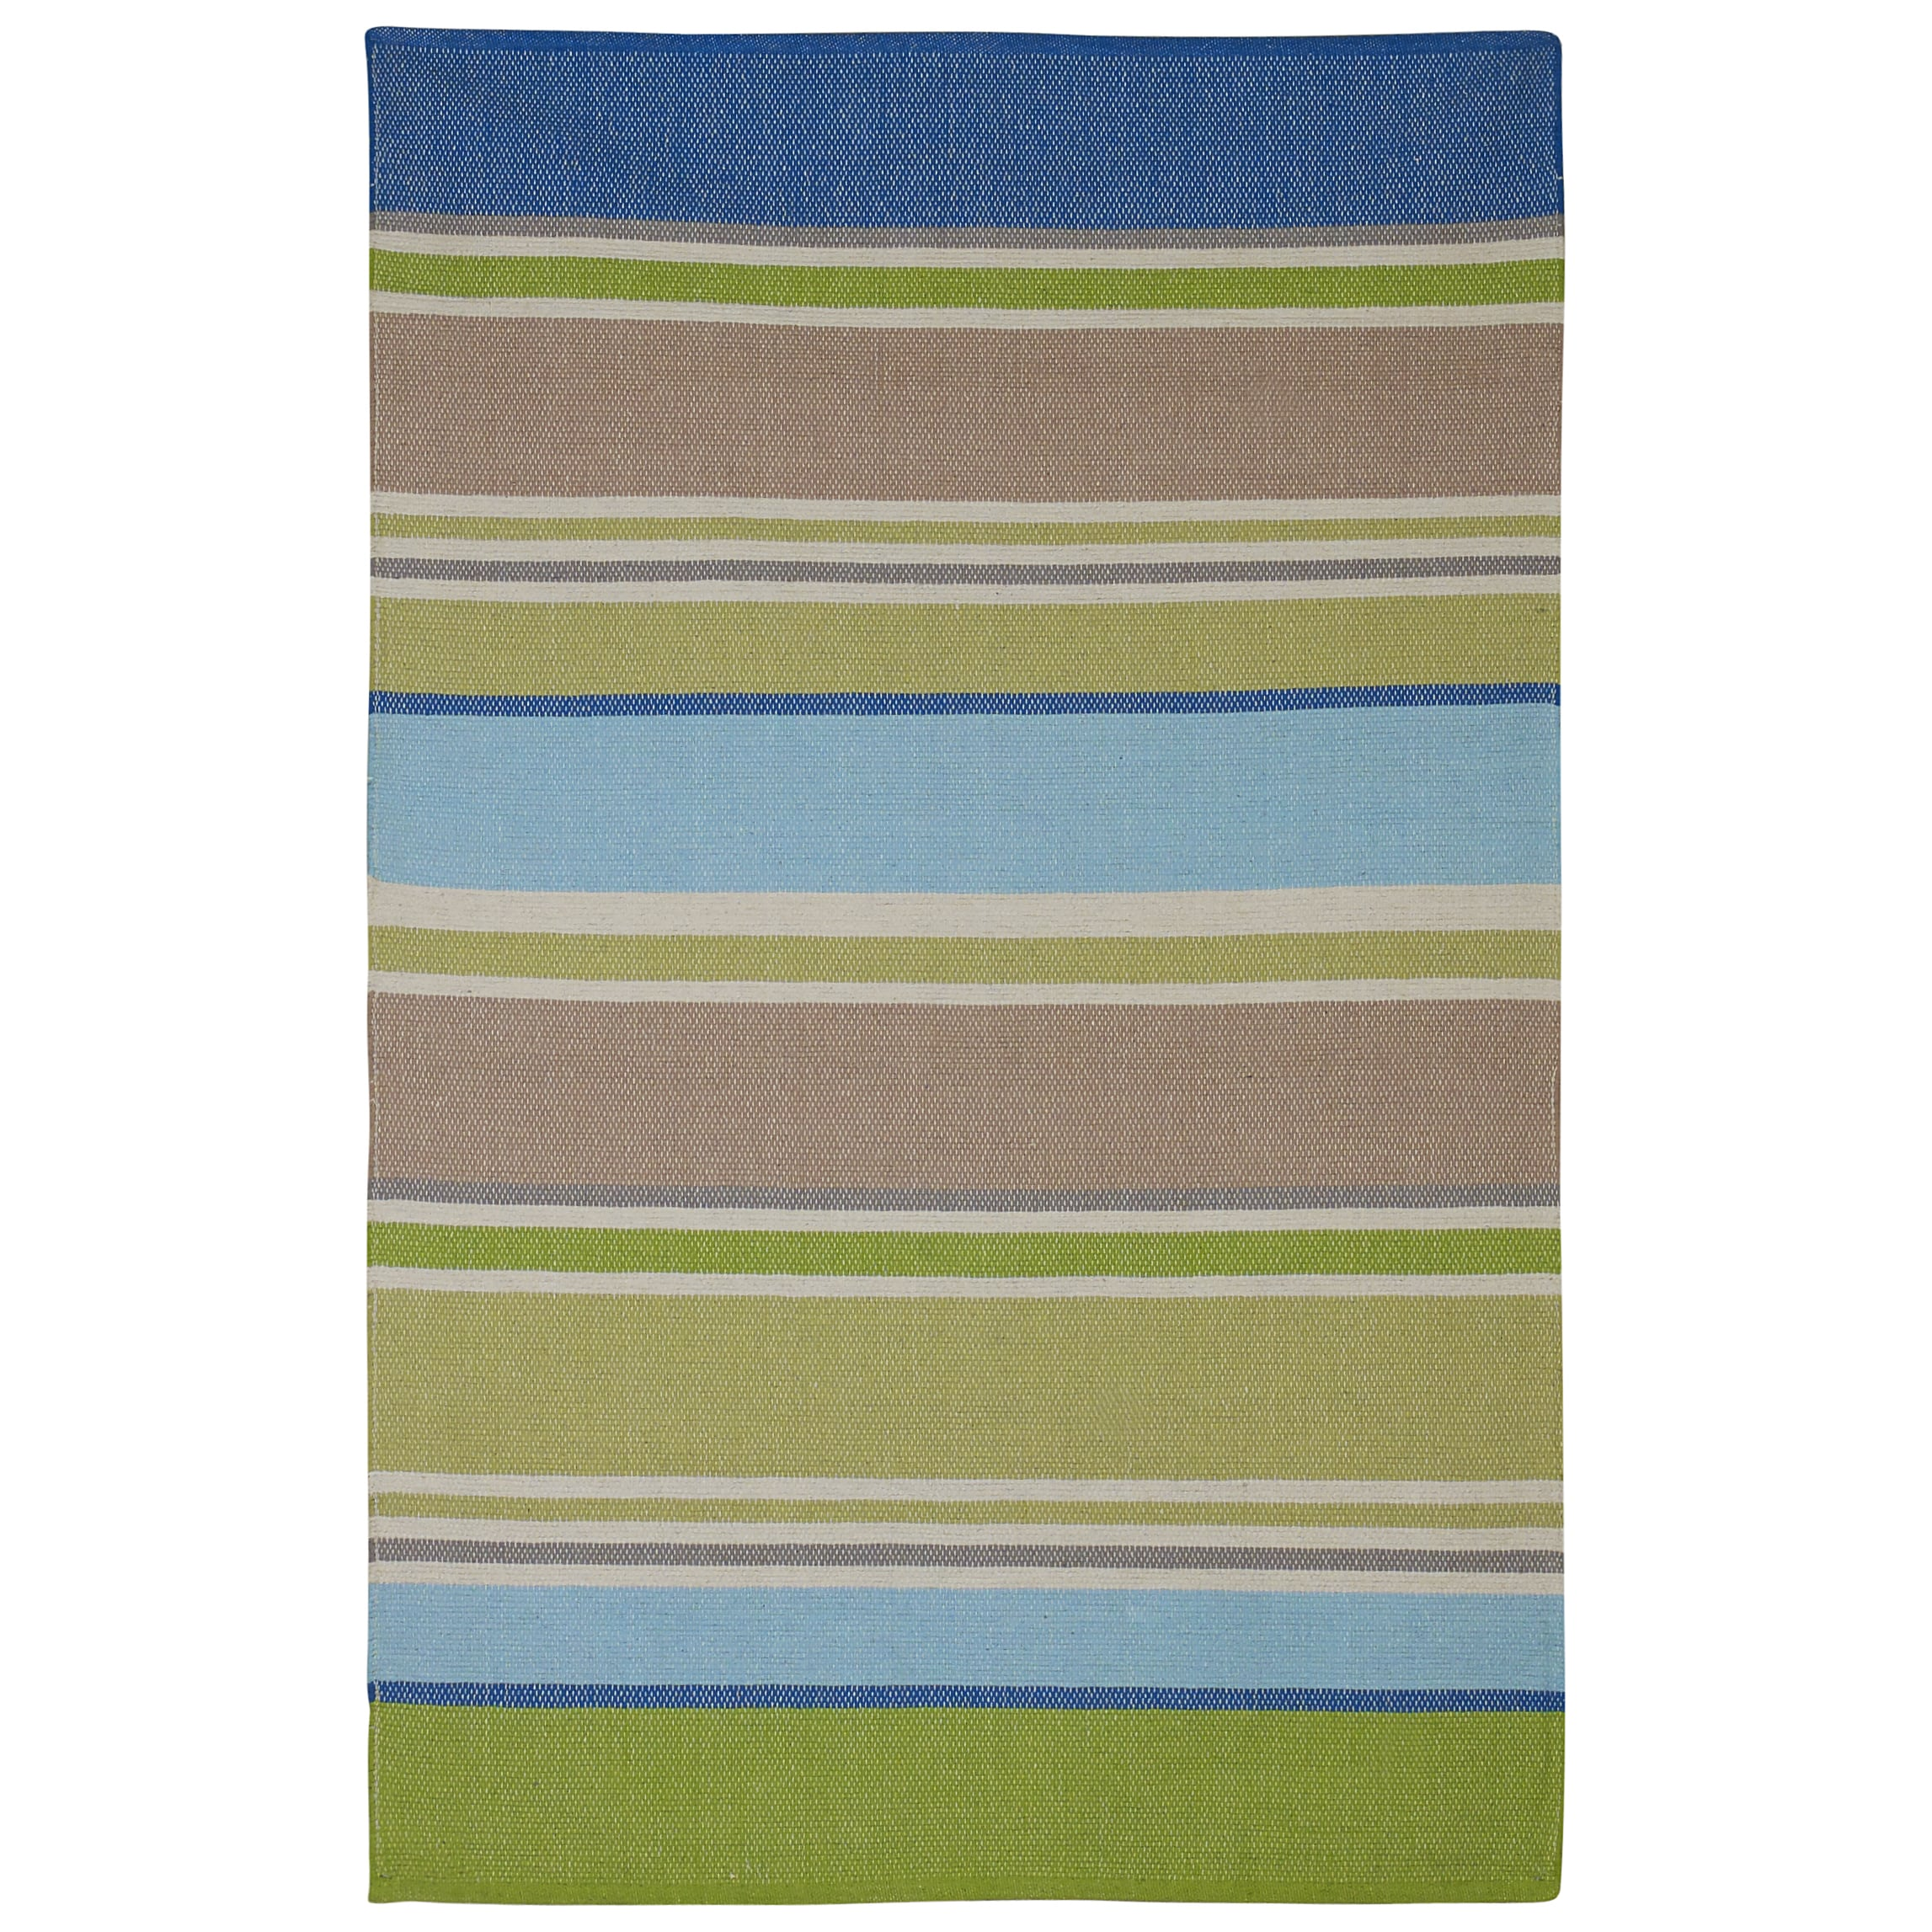 Fab Habitat Reversible Cotton Area Rugs | Rugs For Living Room, Bathroom Rug,  Kitchen